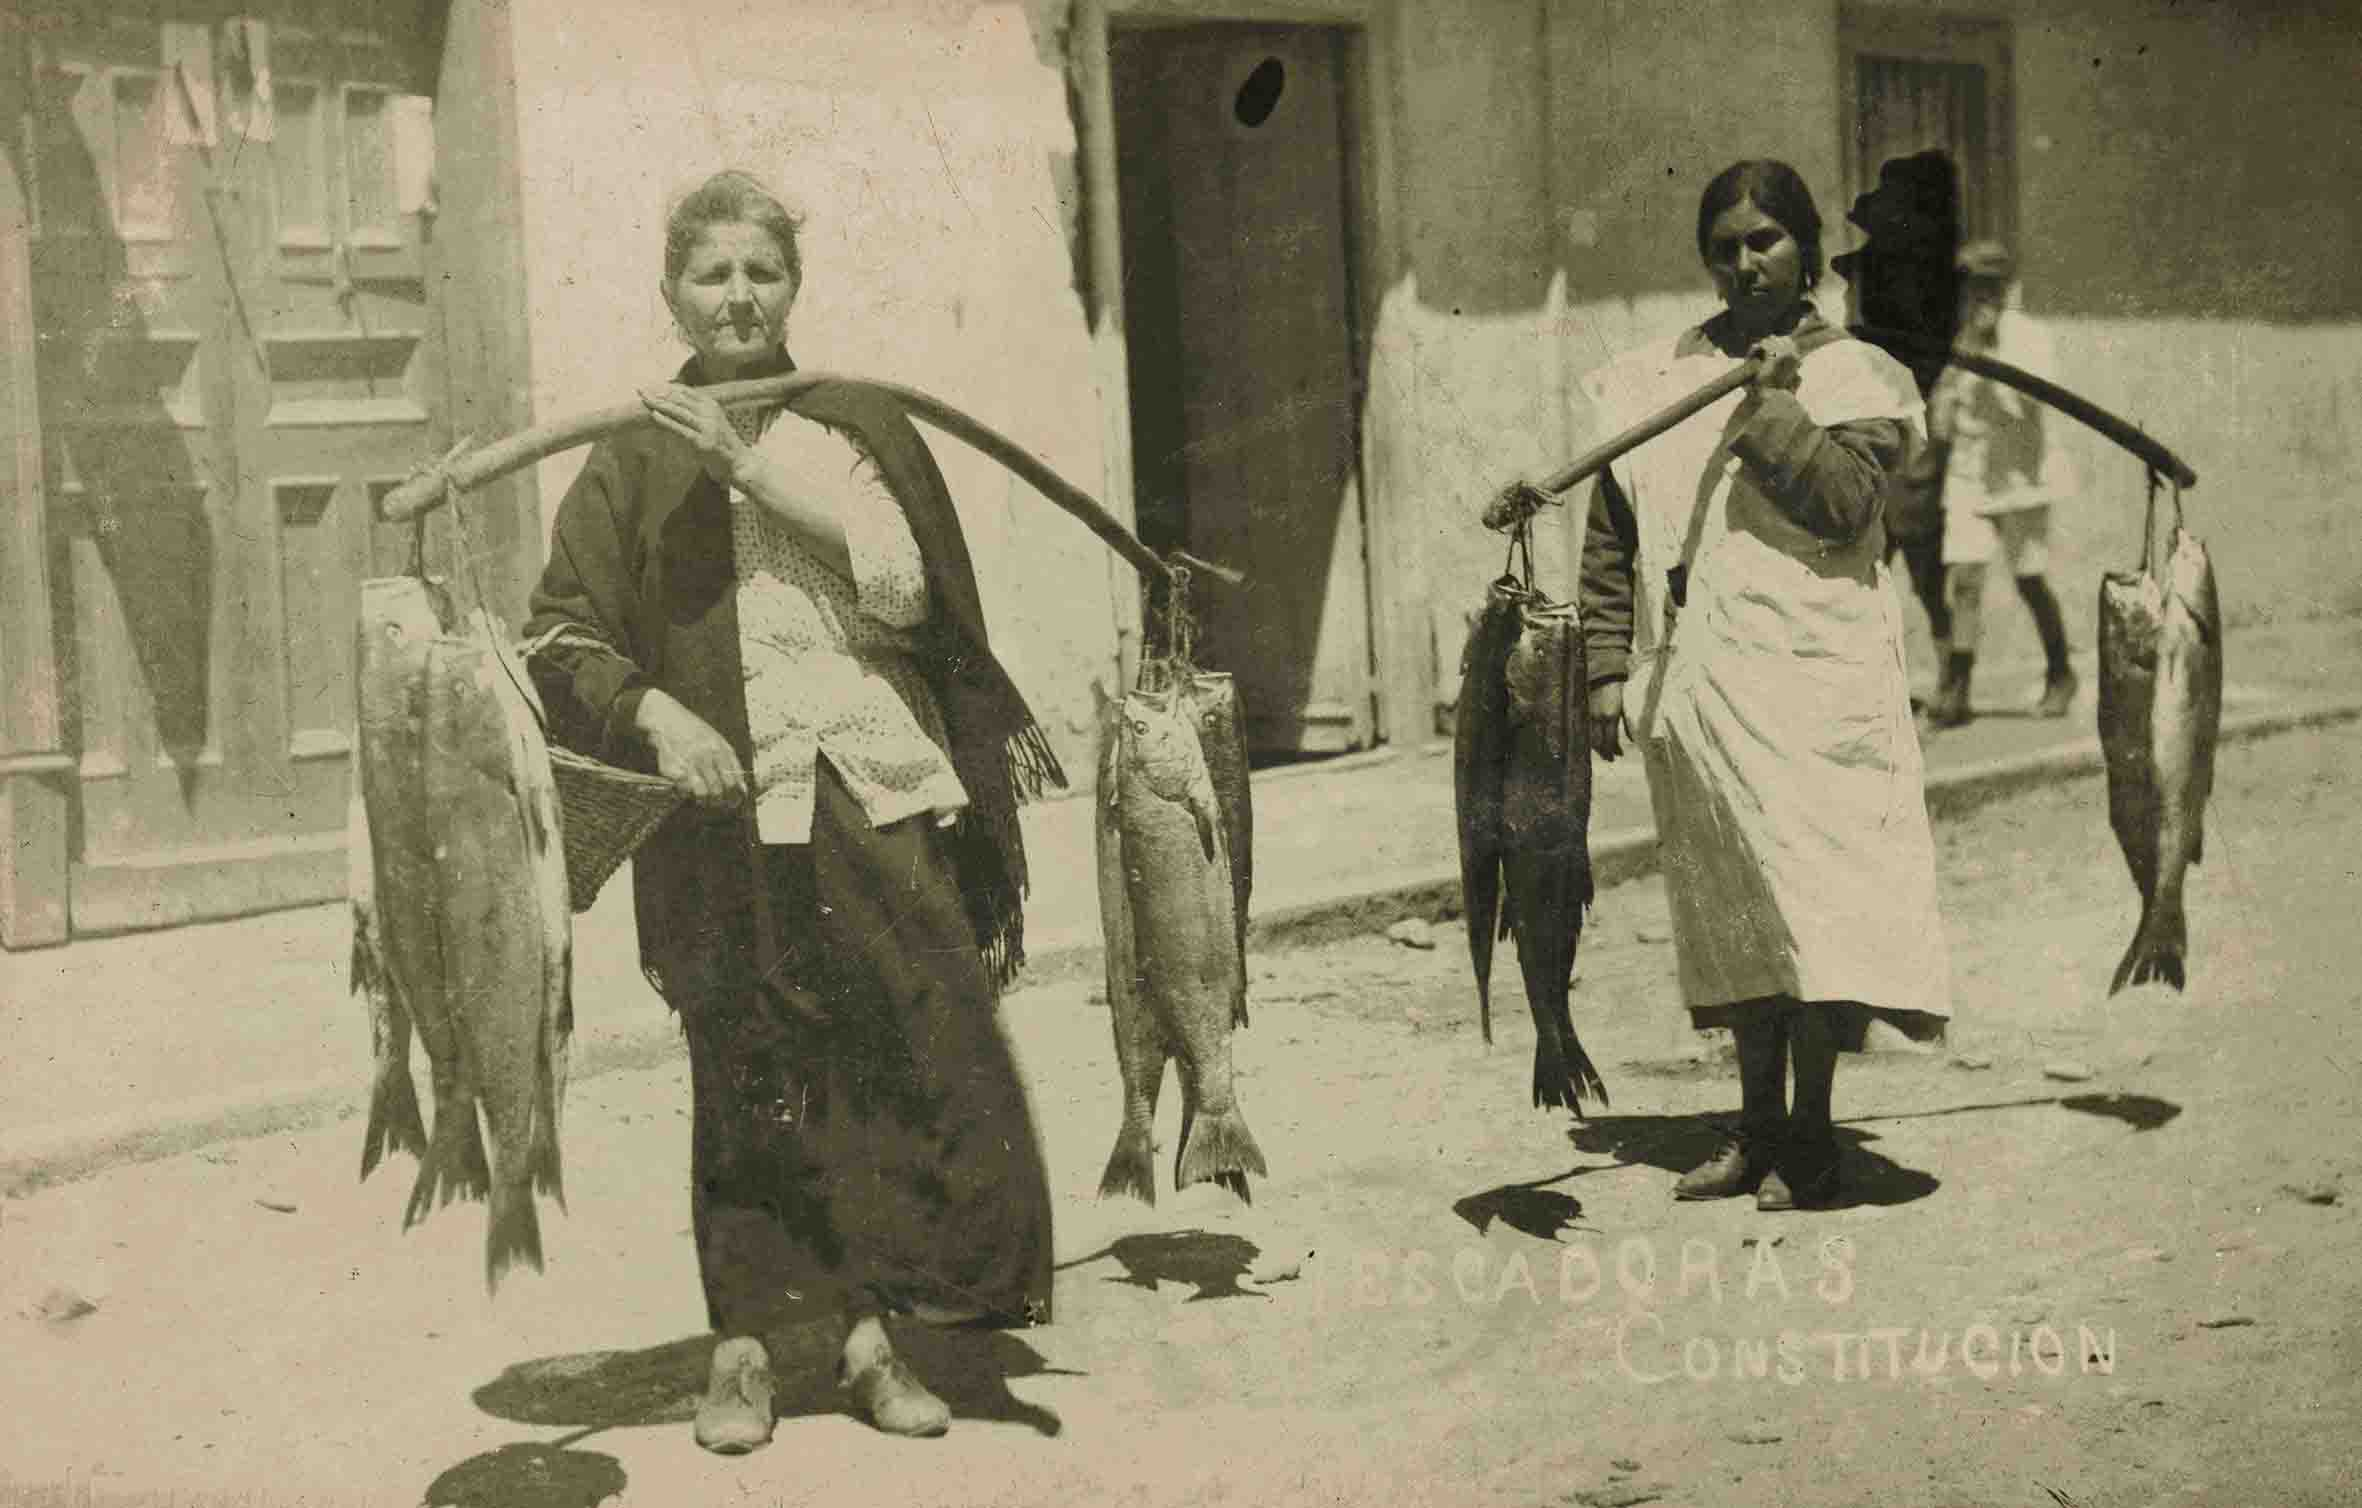 Enterreno - Fotos históricas de chile - fotos antiguas de Chile - Vendedoras de pescado ca. 1930